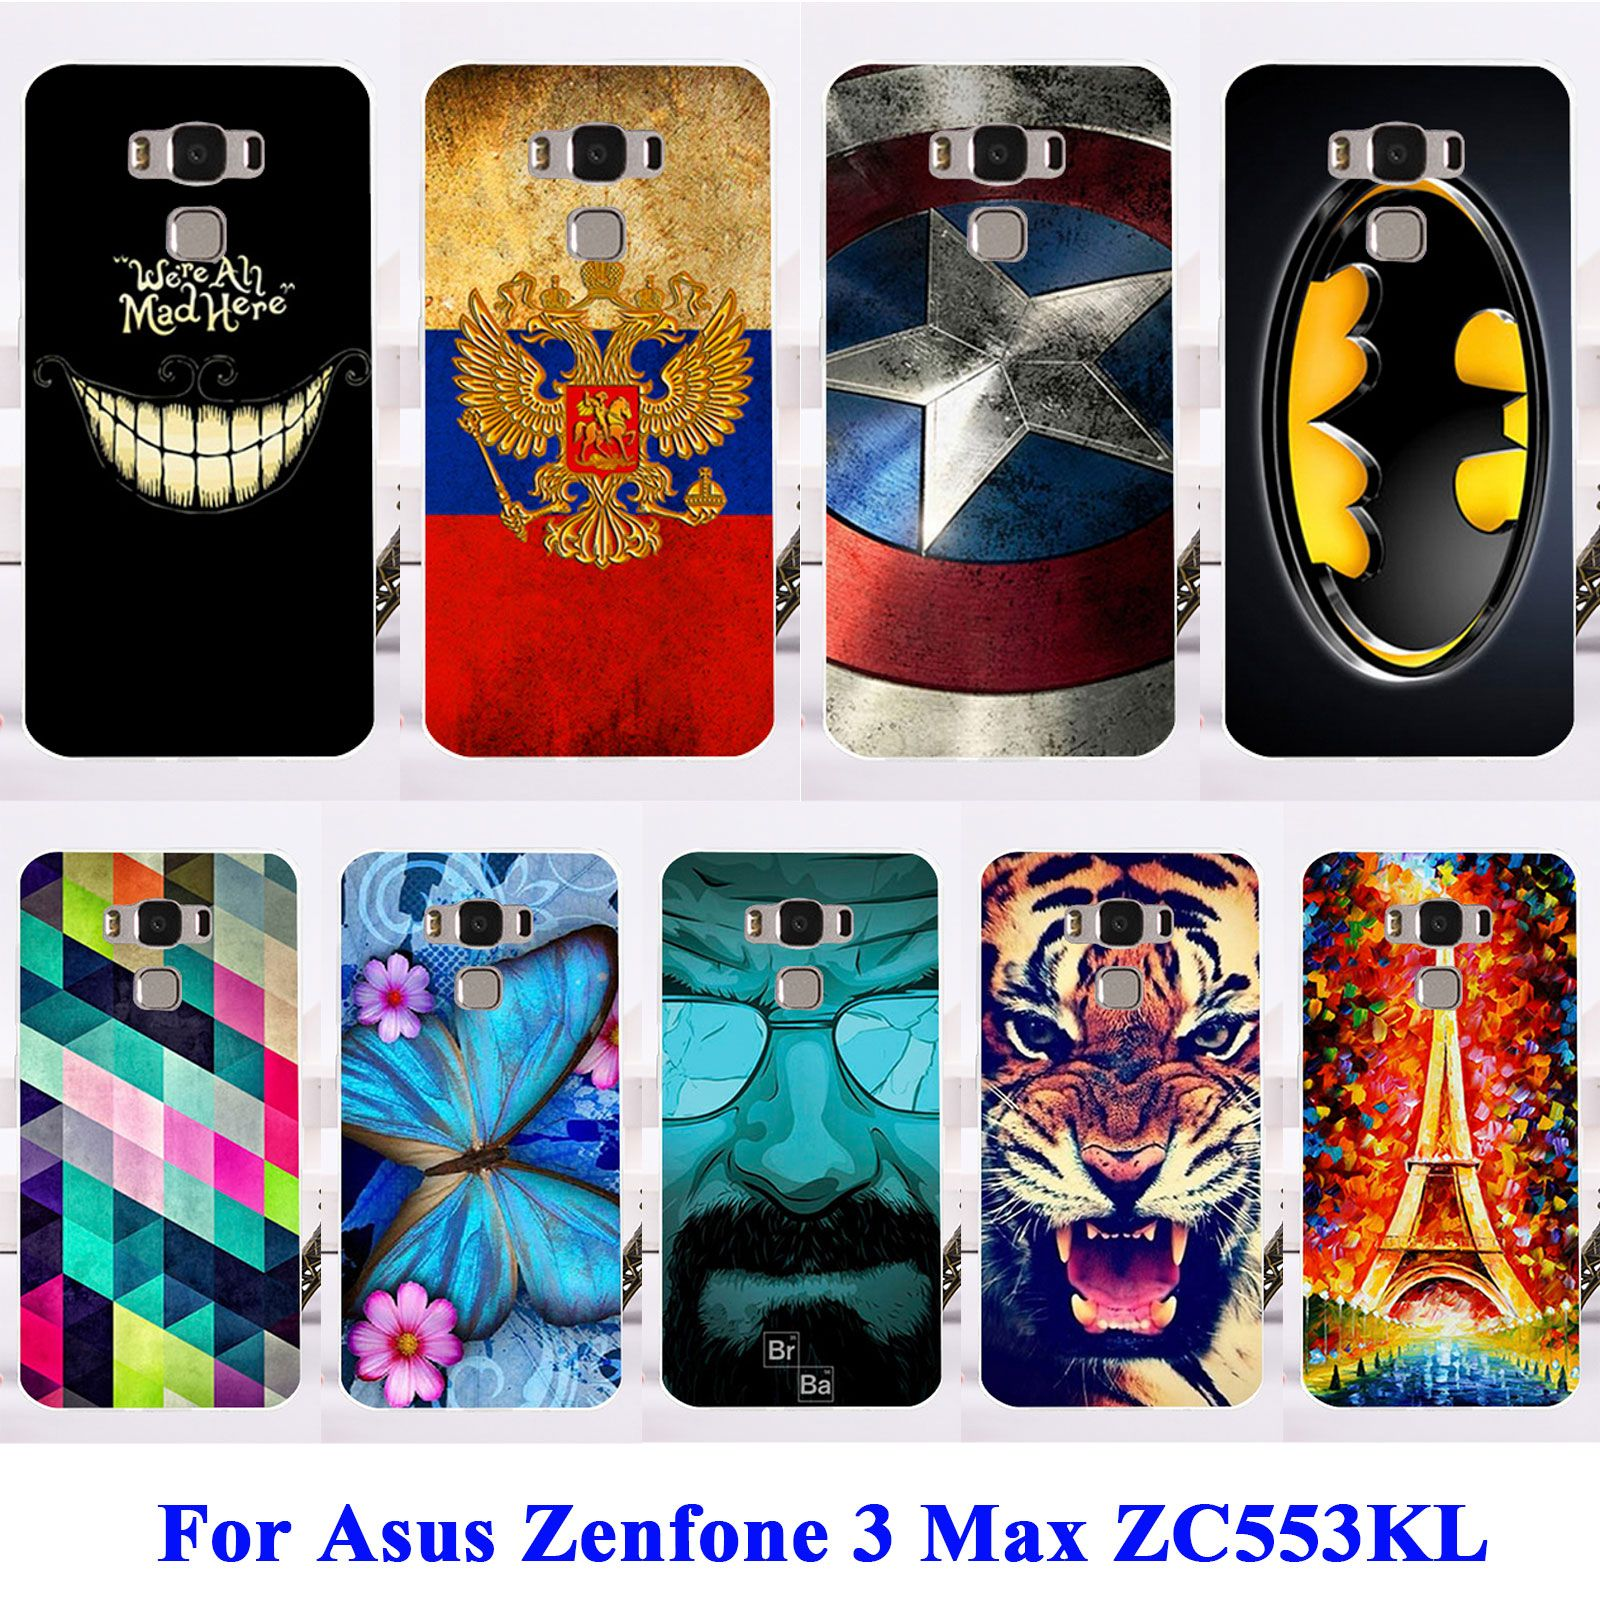 buy online 7af2f 70638 Soft TPU Hard Plastic Phone Cases For Asus Zenfone 3 Max ZC553KL ...